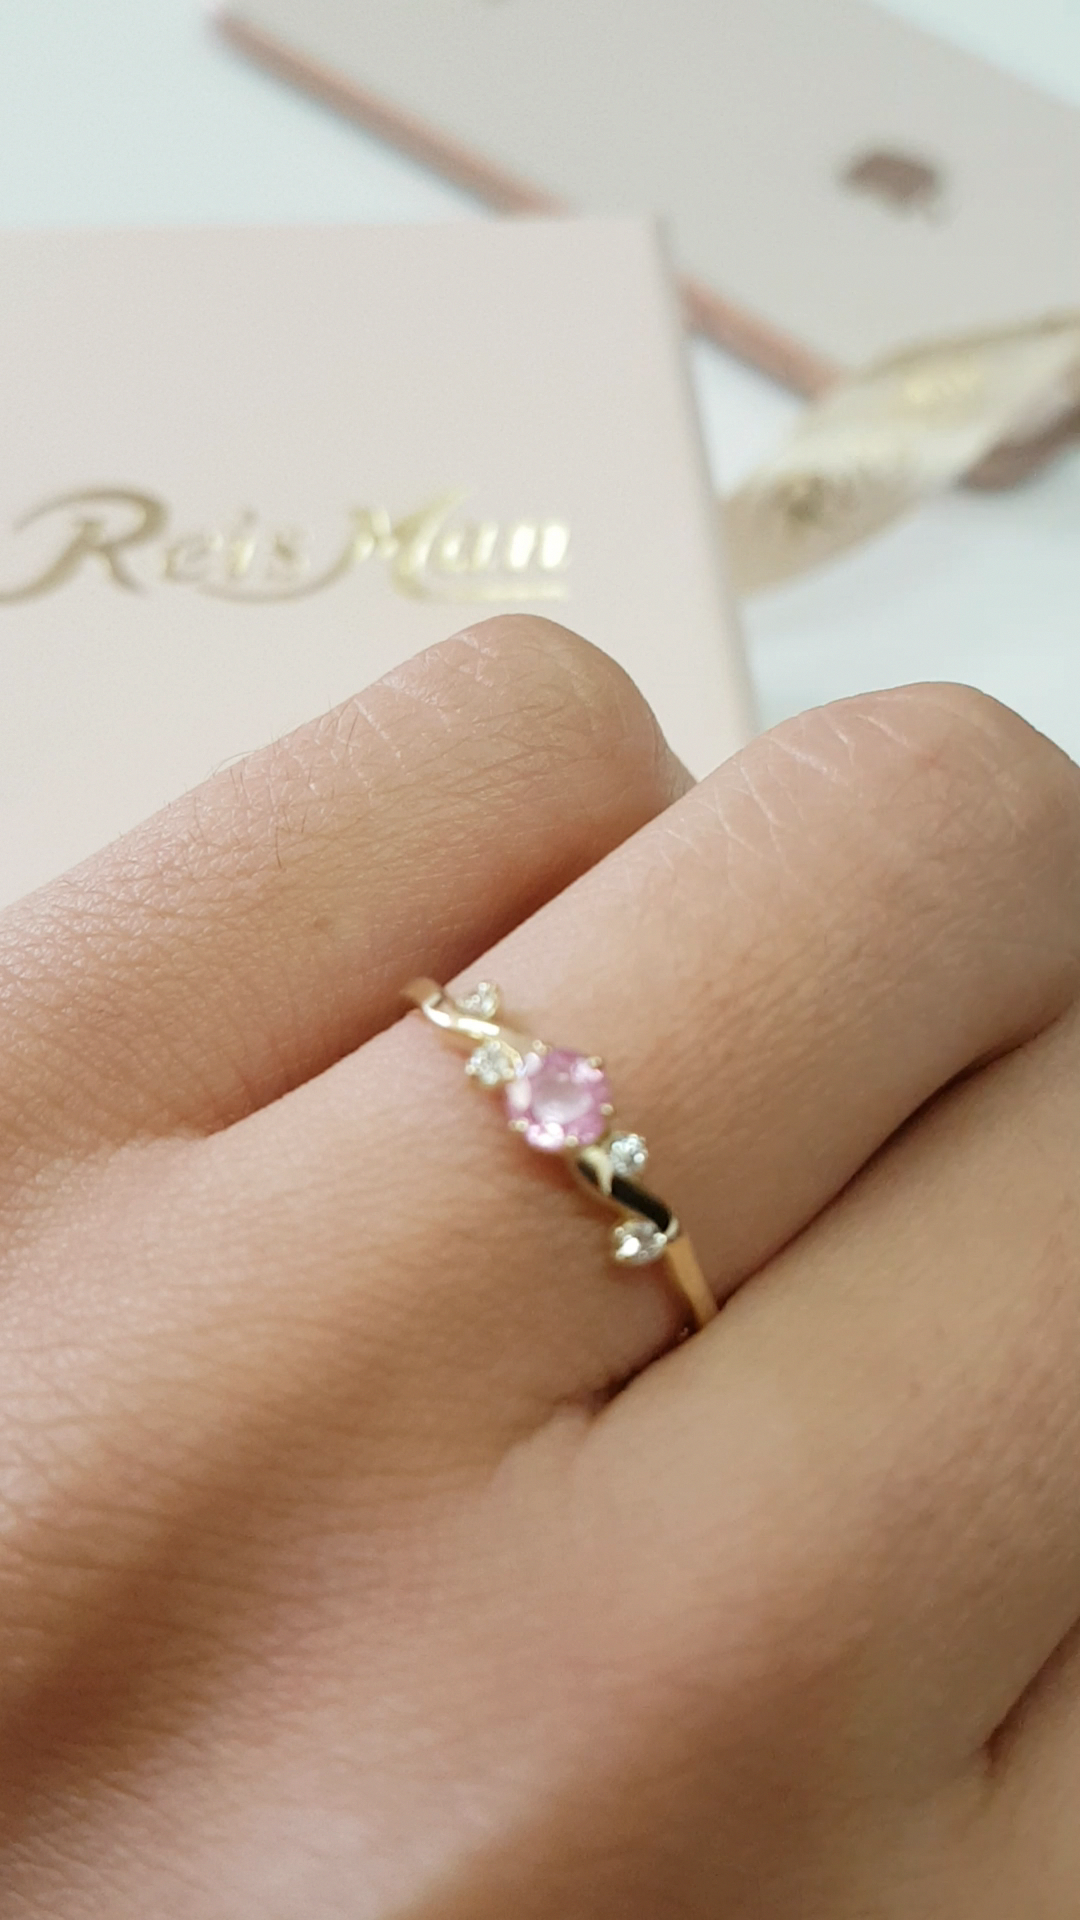 Real SI Clarity G-H Color Diamond Floral Ring Solid 14K Yellow Gold Handmade Fashion Fine Jewelry Wedding Proposal Heart Ring